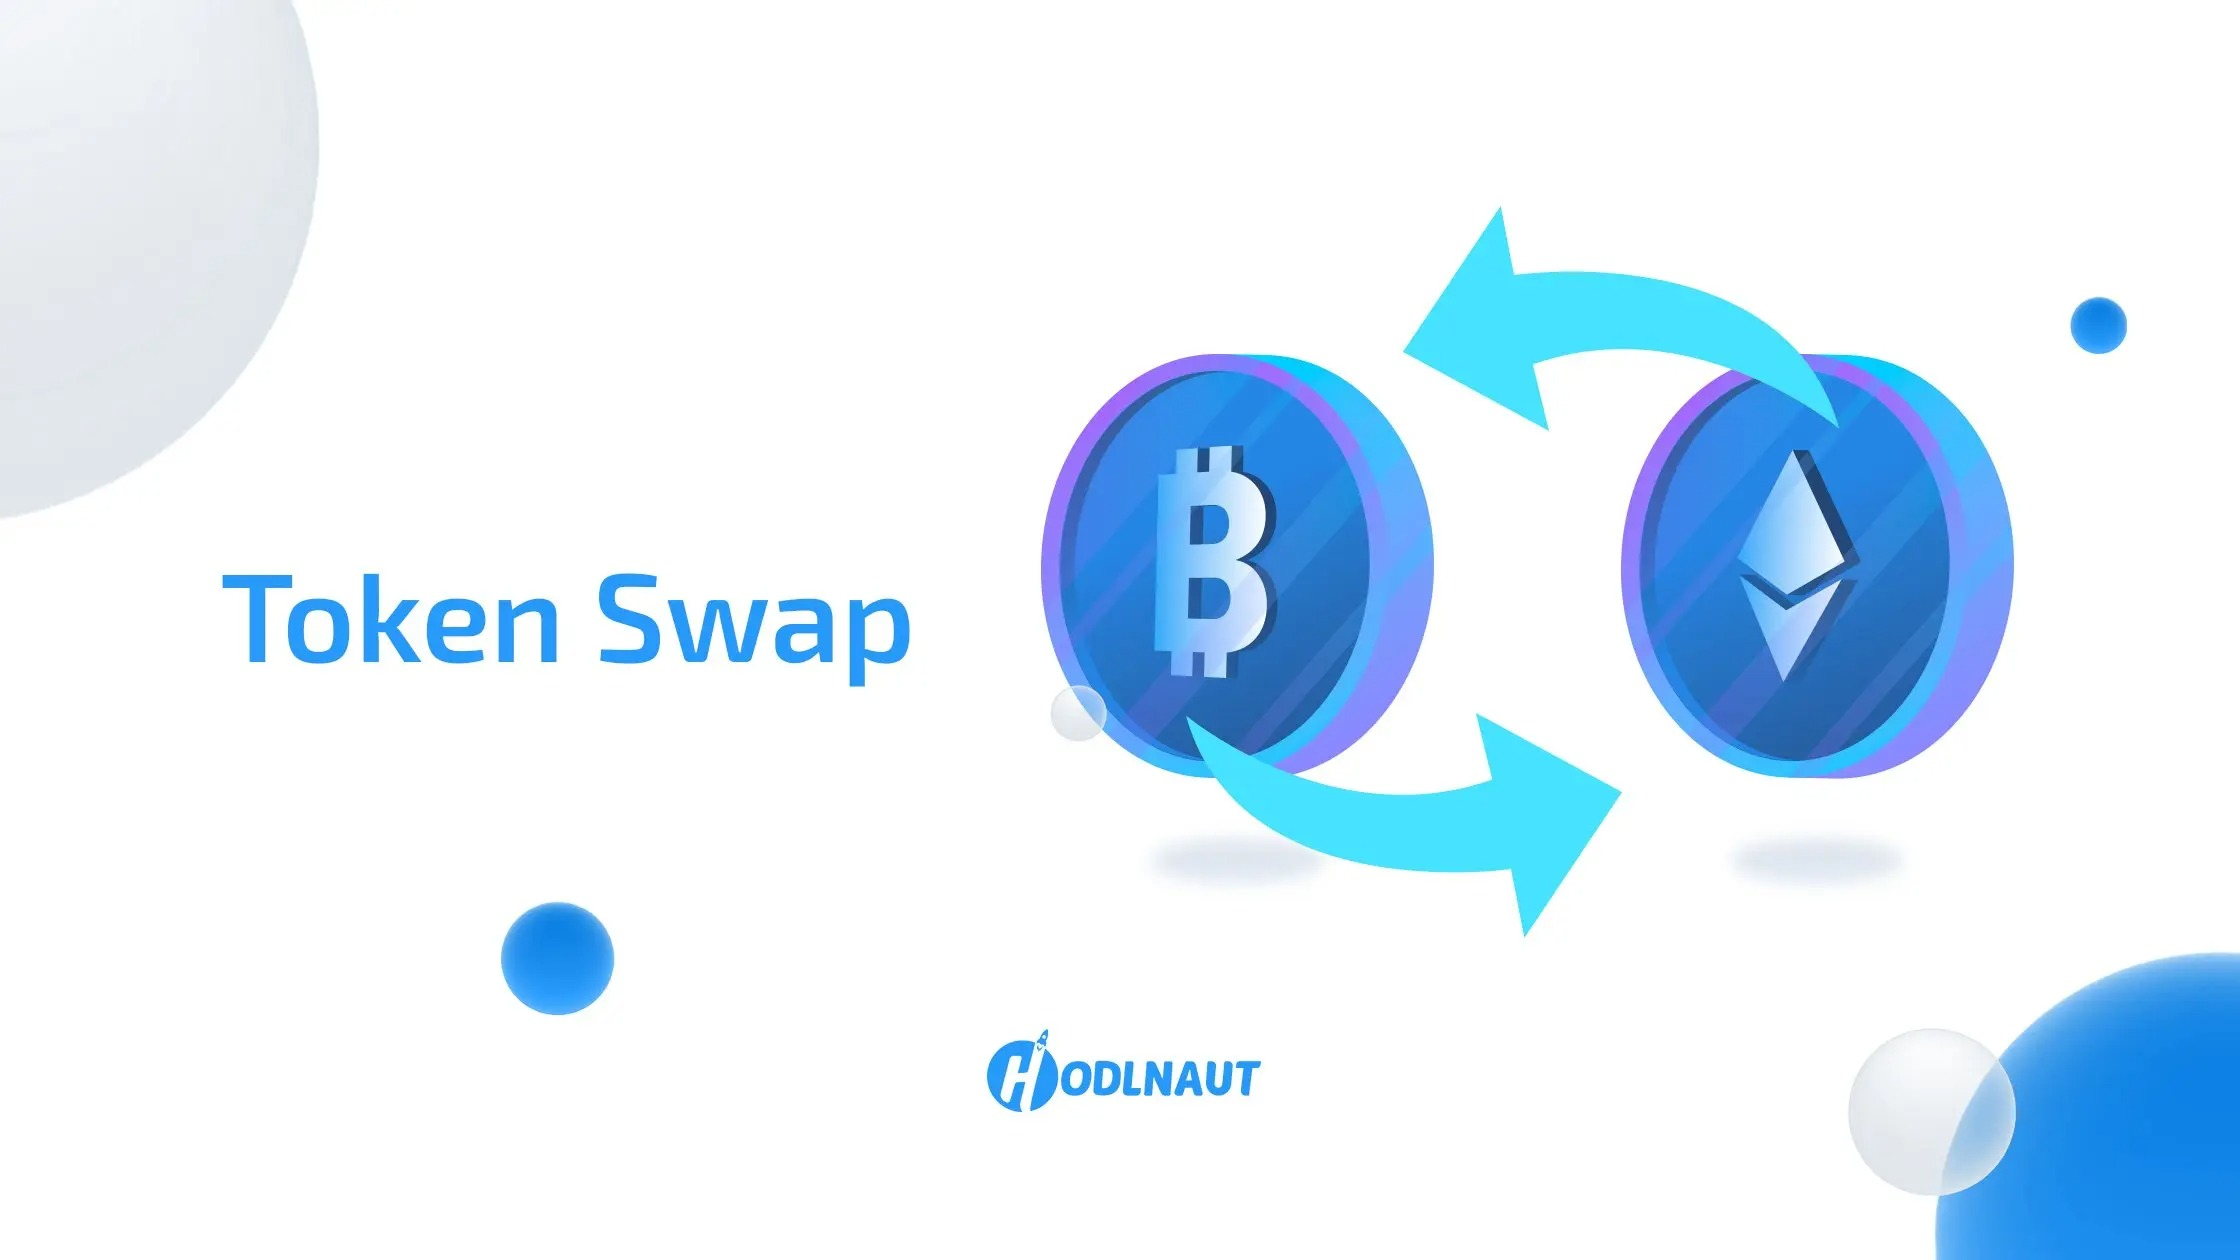 Hodlnaut Launches a New Feature: Token Swap